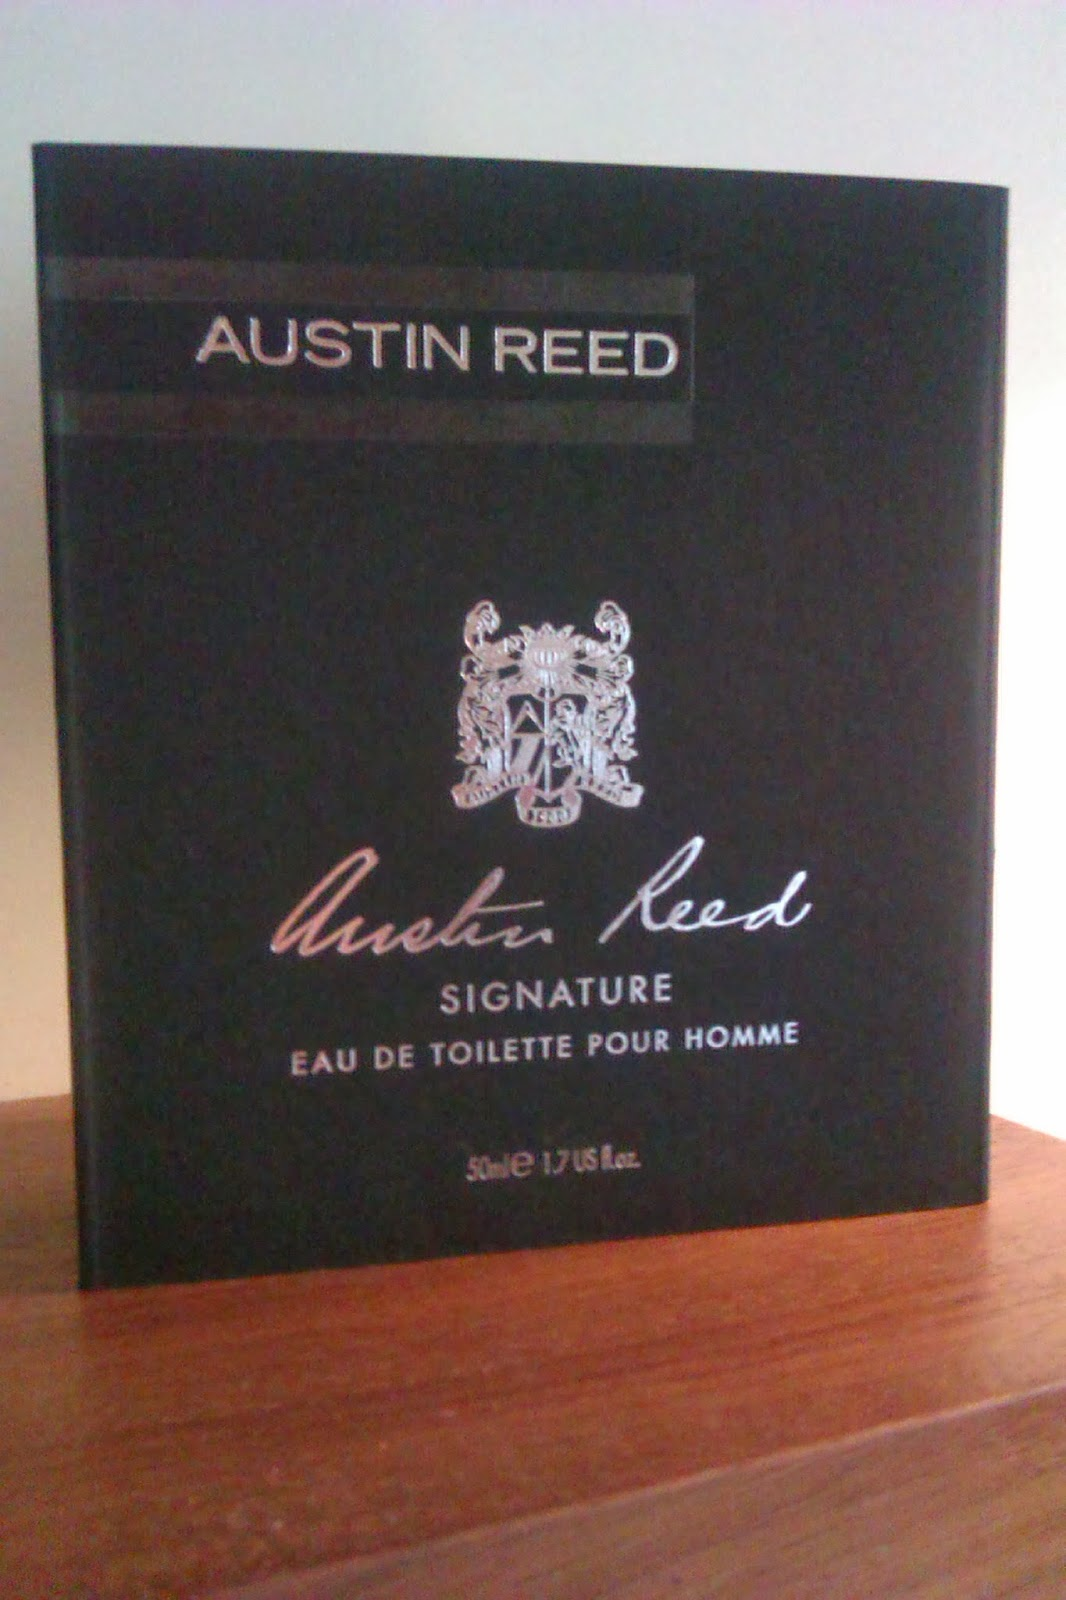 Men S Styling Austin Reed S New Fragrance Signature Eau De Toilette Pour Homme